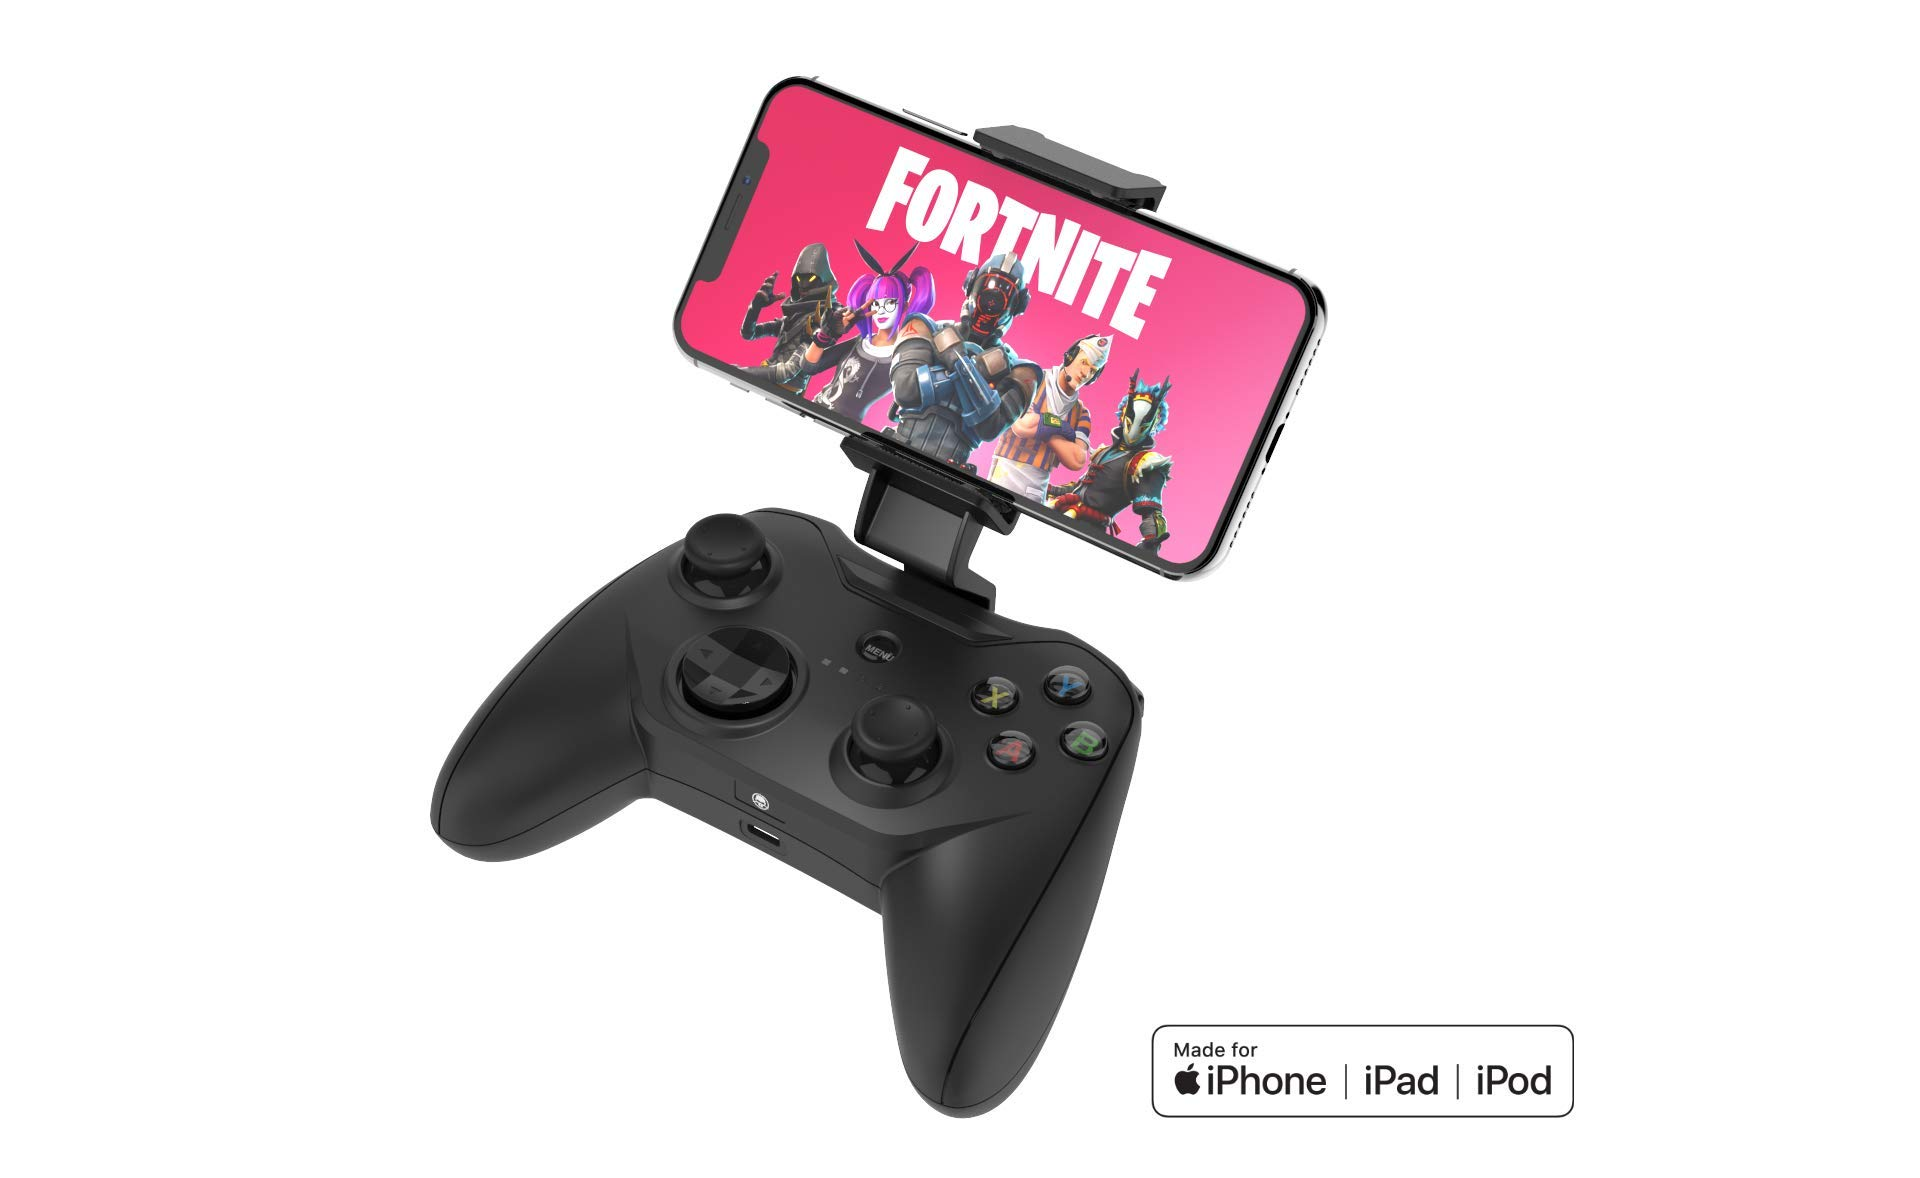 Rotor Riot Mobile iPhone Controller & Drone Controller - Wired Controller with L3 + R3 Compatibility, Power Pass Though Charging, Improved 8 Way D-Pad, redesigned ZeroG Mobile Device Holder